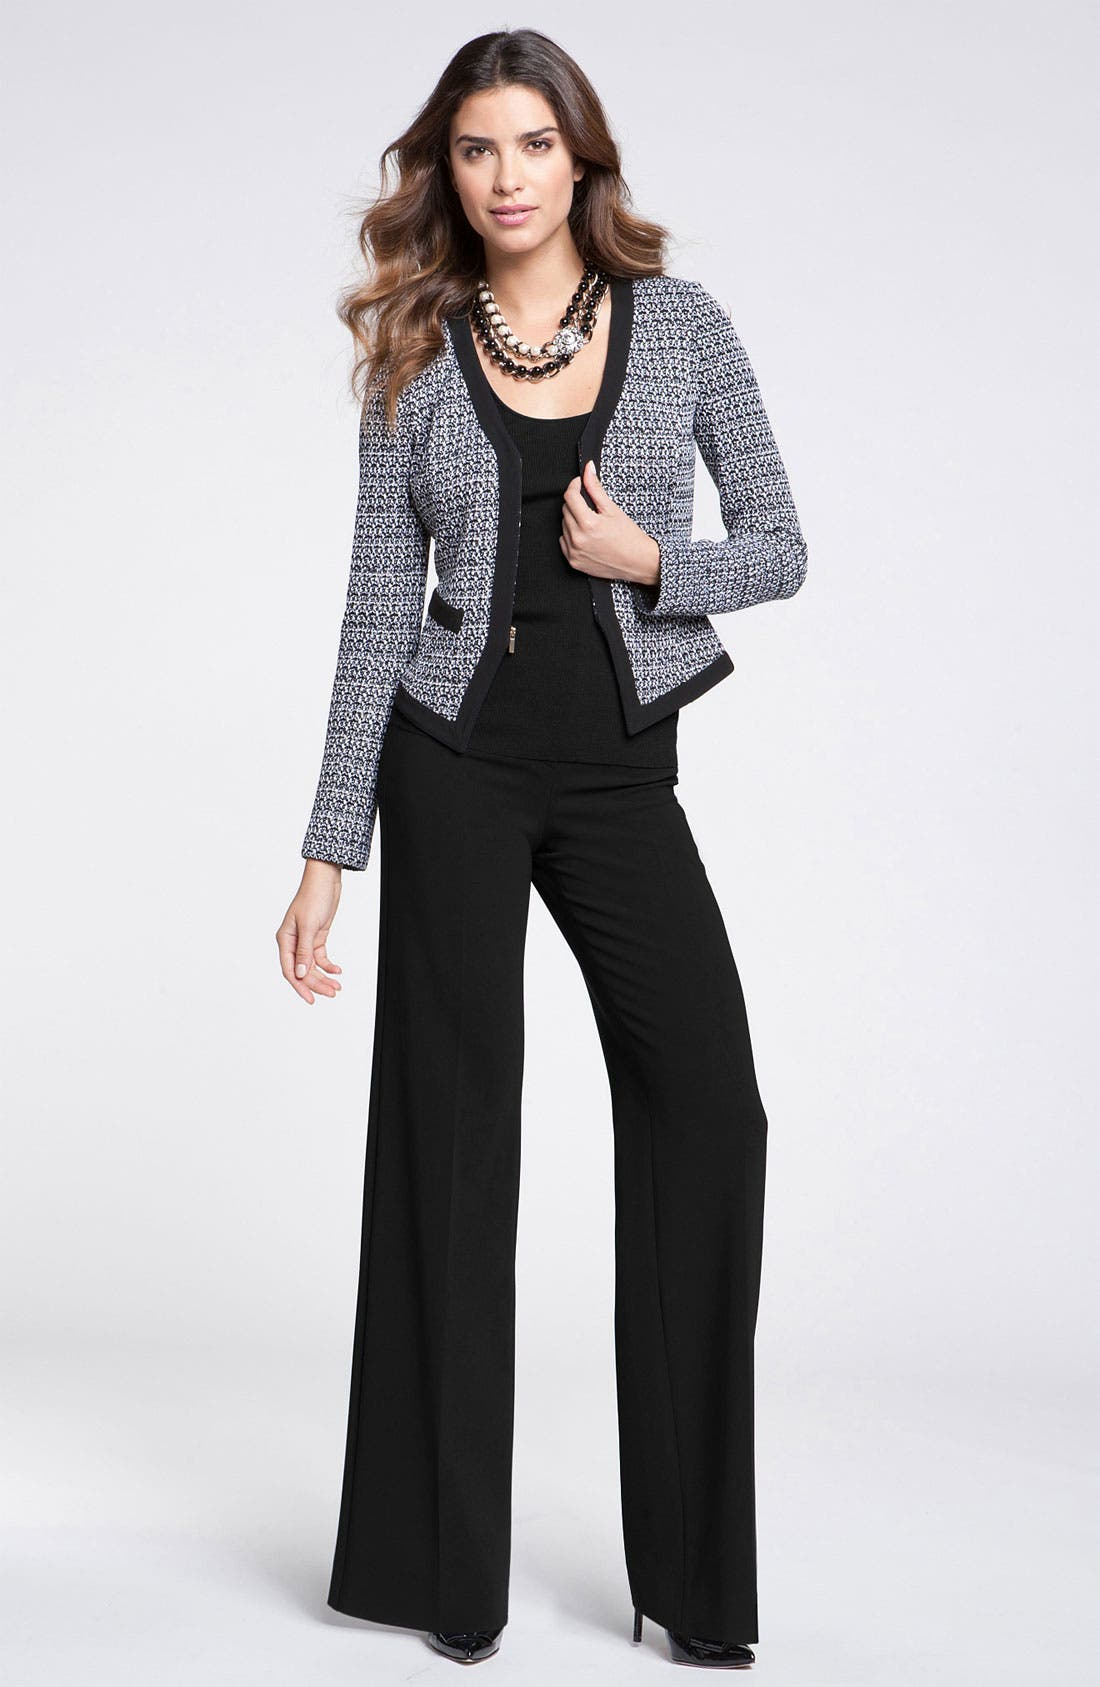 Alternate Image 1 Selected - St. John Collection Tweed Jacket & Wide Leg Pants